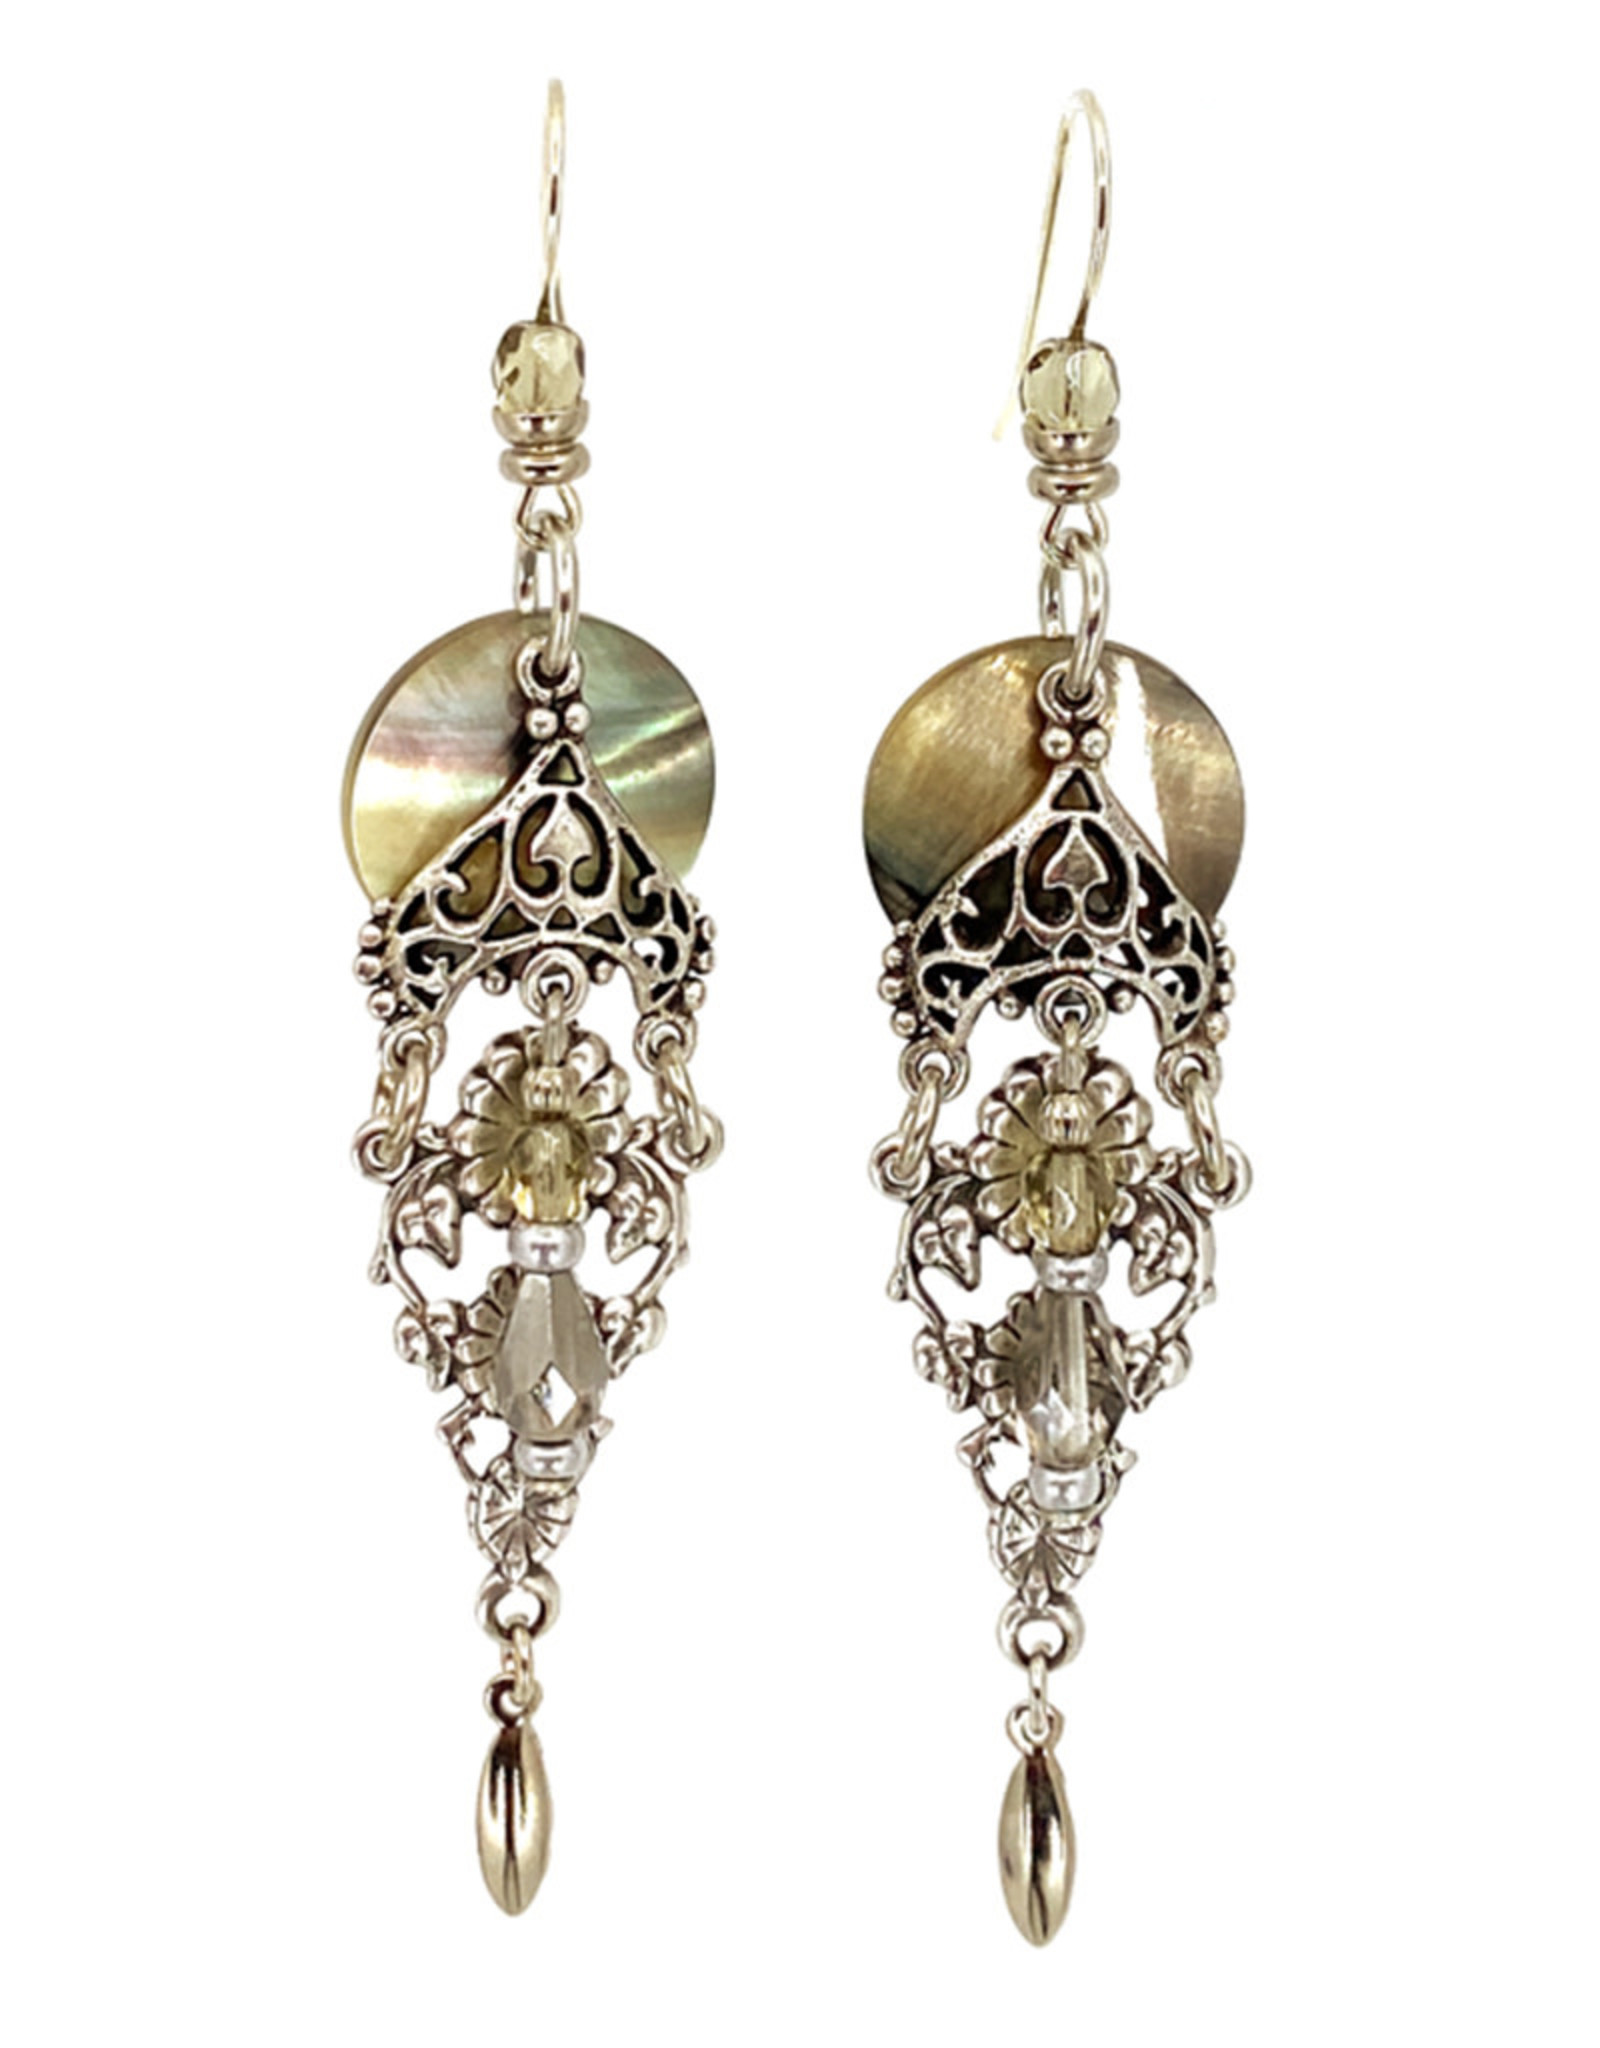 JOHN MICHAEL RICHARDSON BAROCOCO DROPS EARRINGS